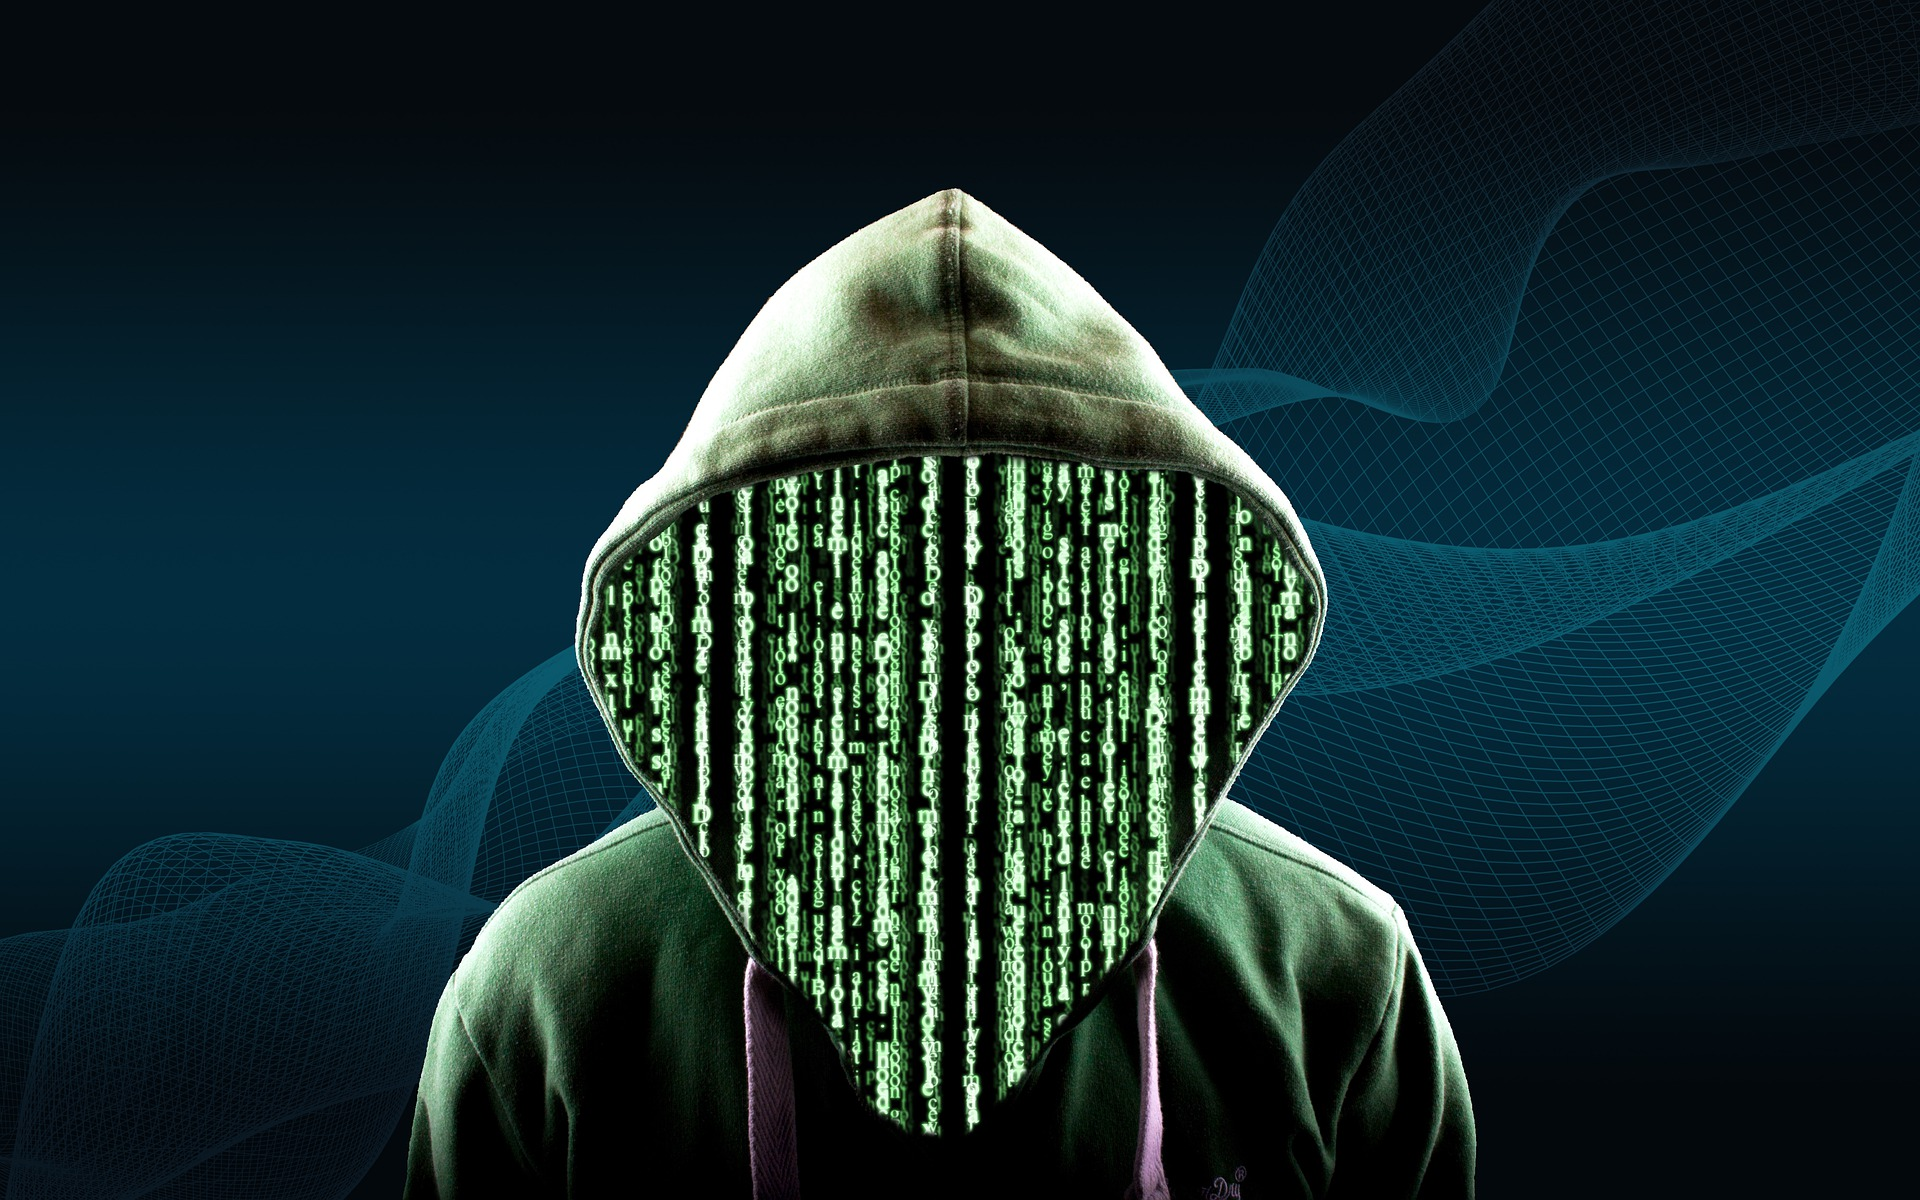 What Is Cyber Hacking?